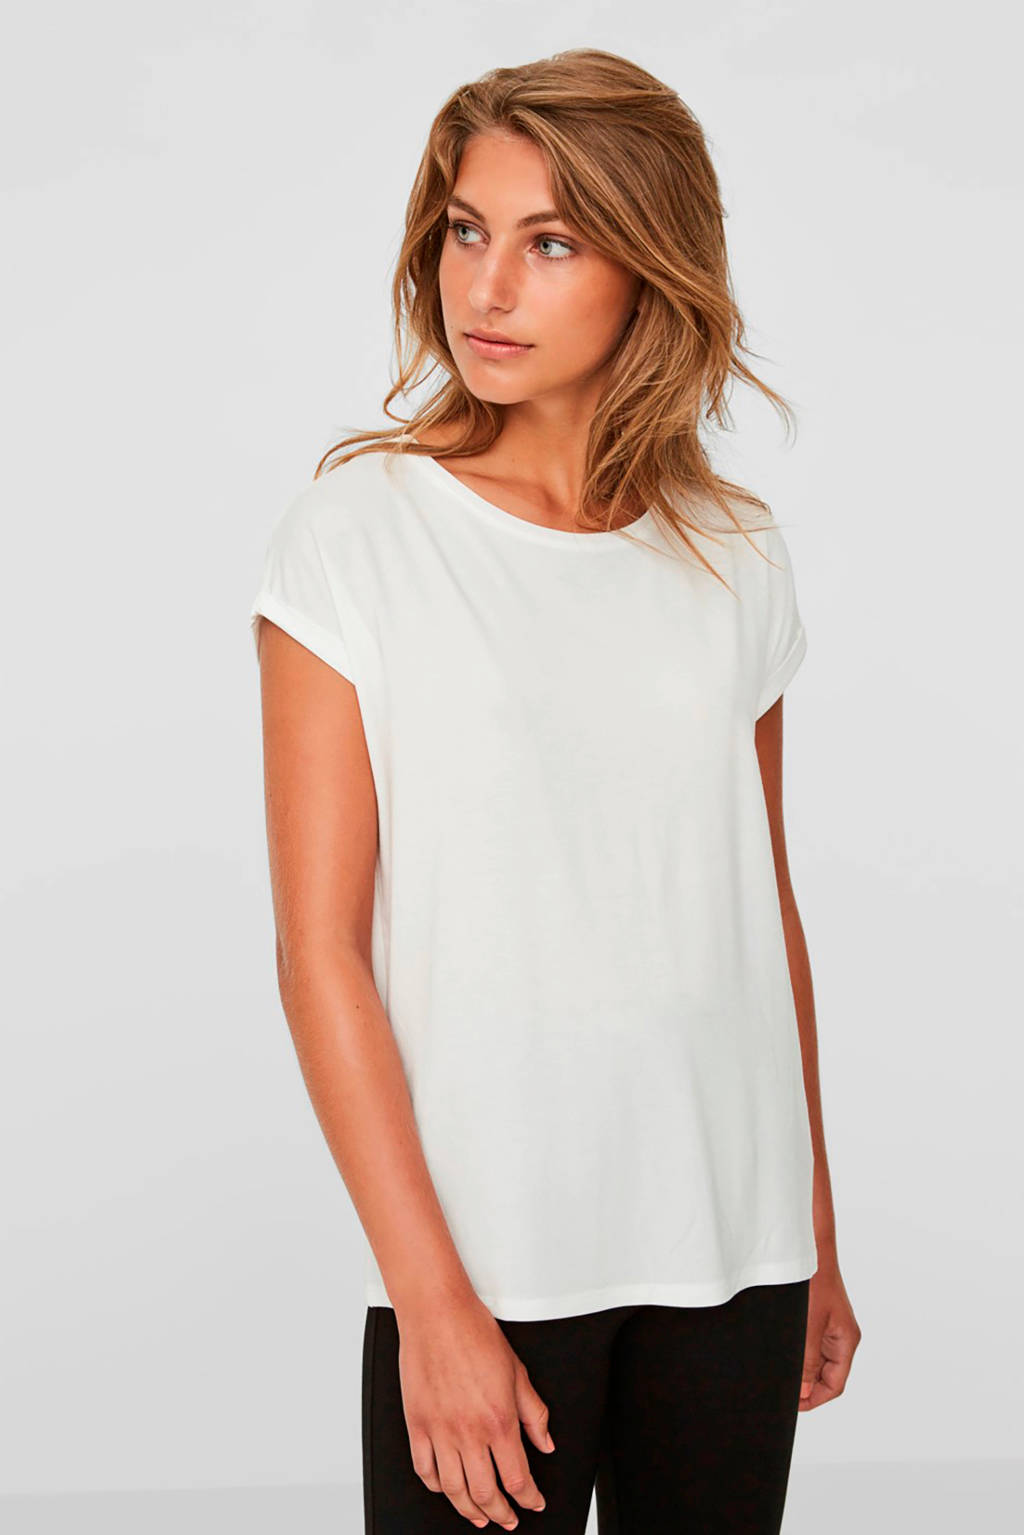 AWARE by VERO MODA T-shirt wit, Wit